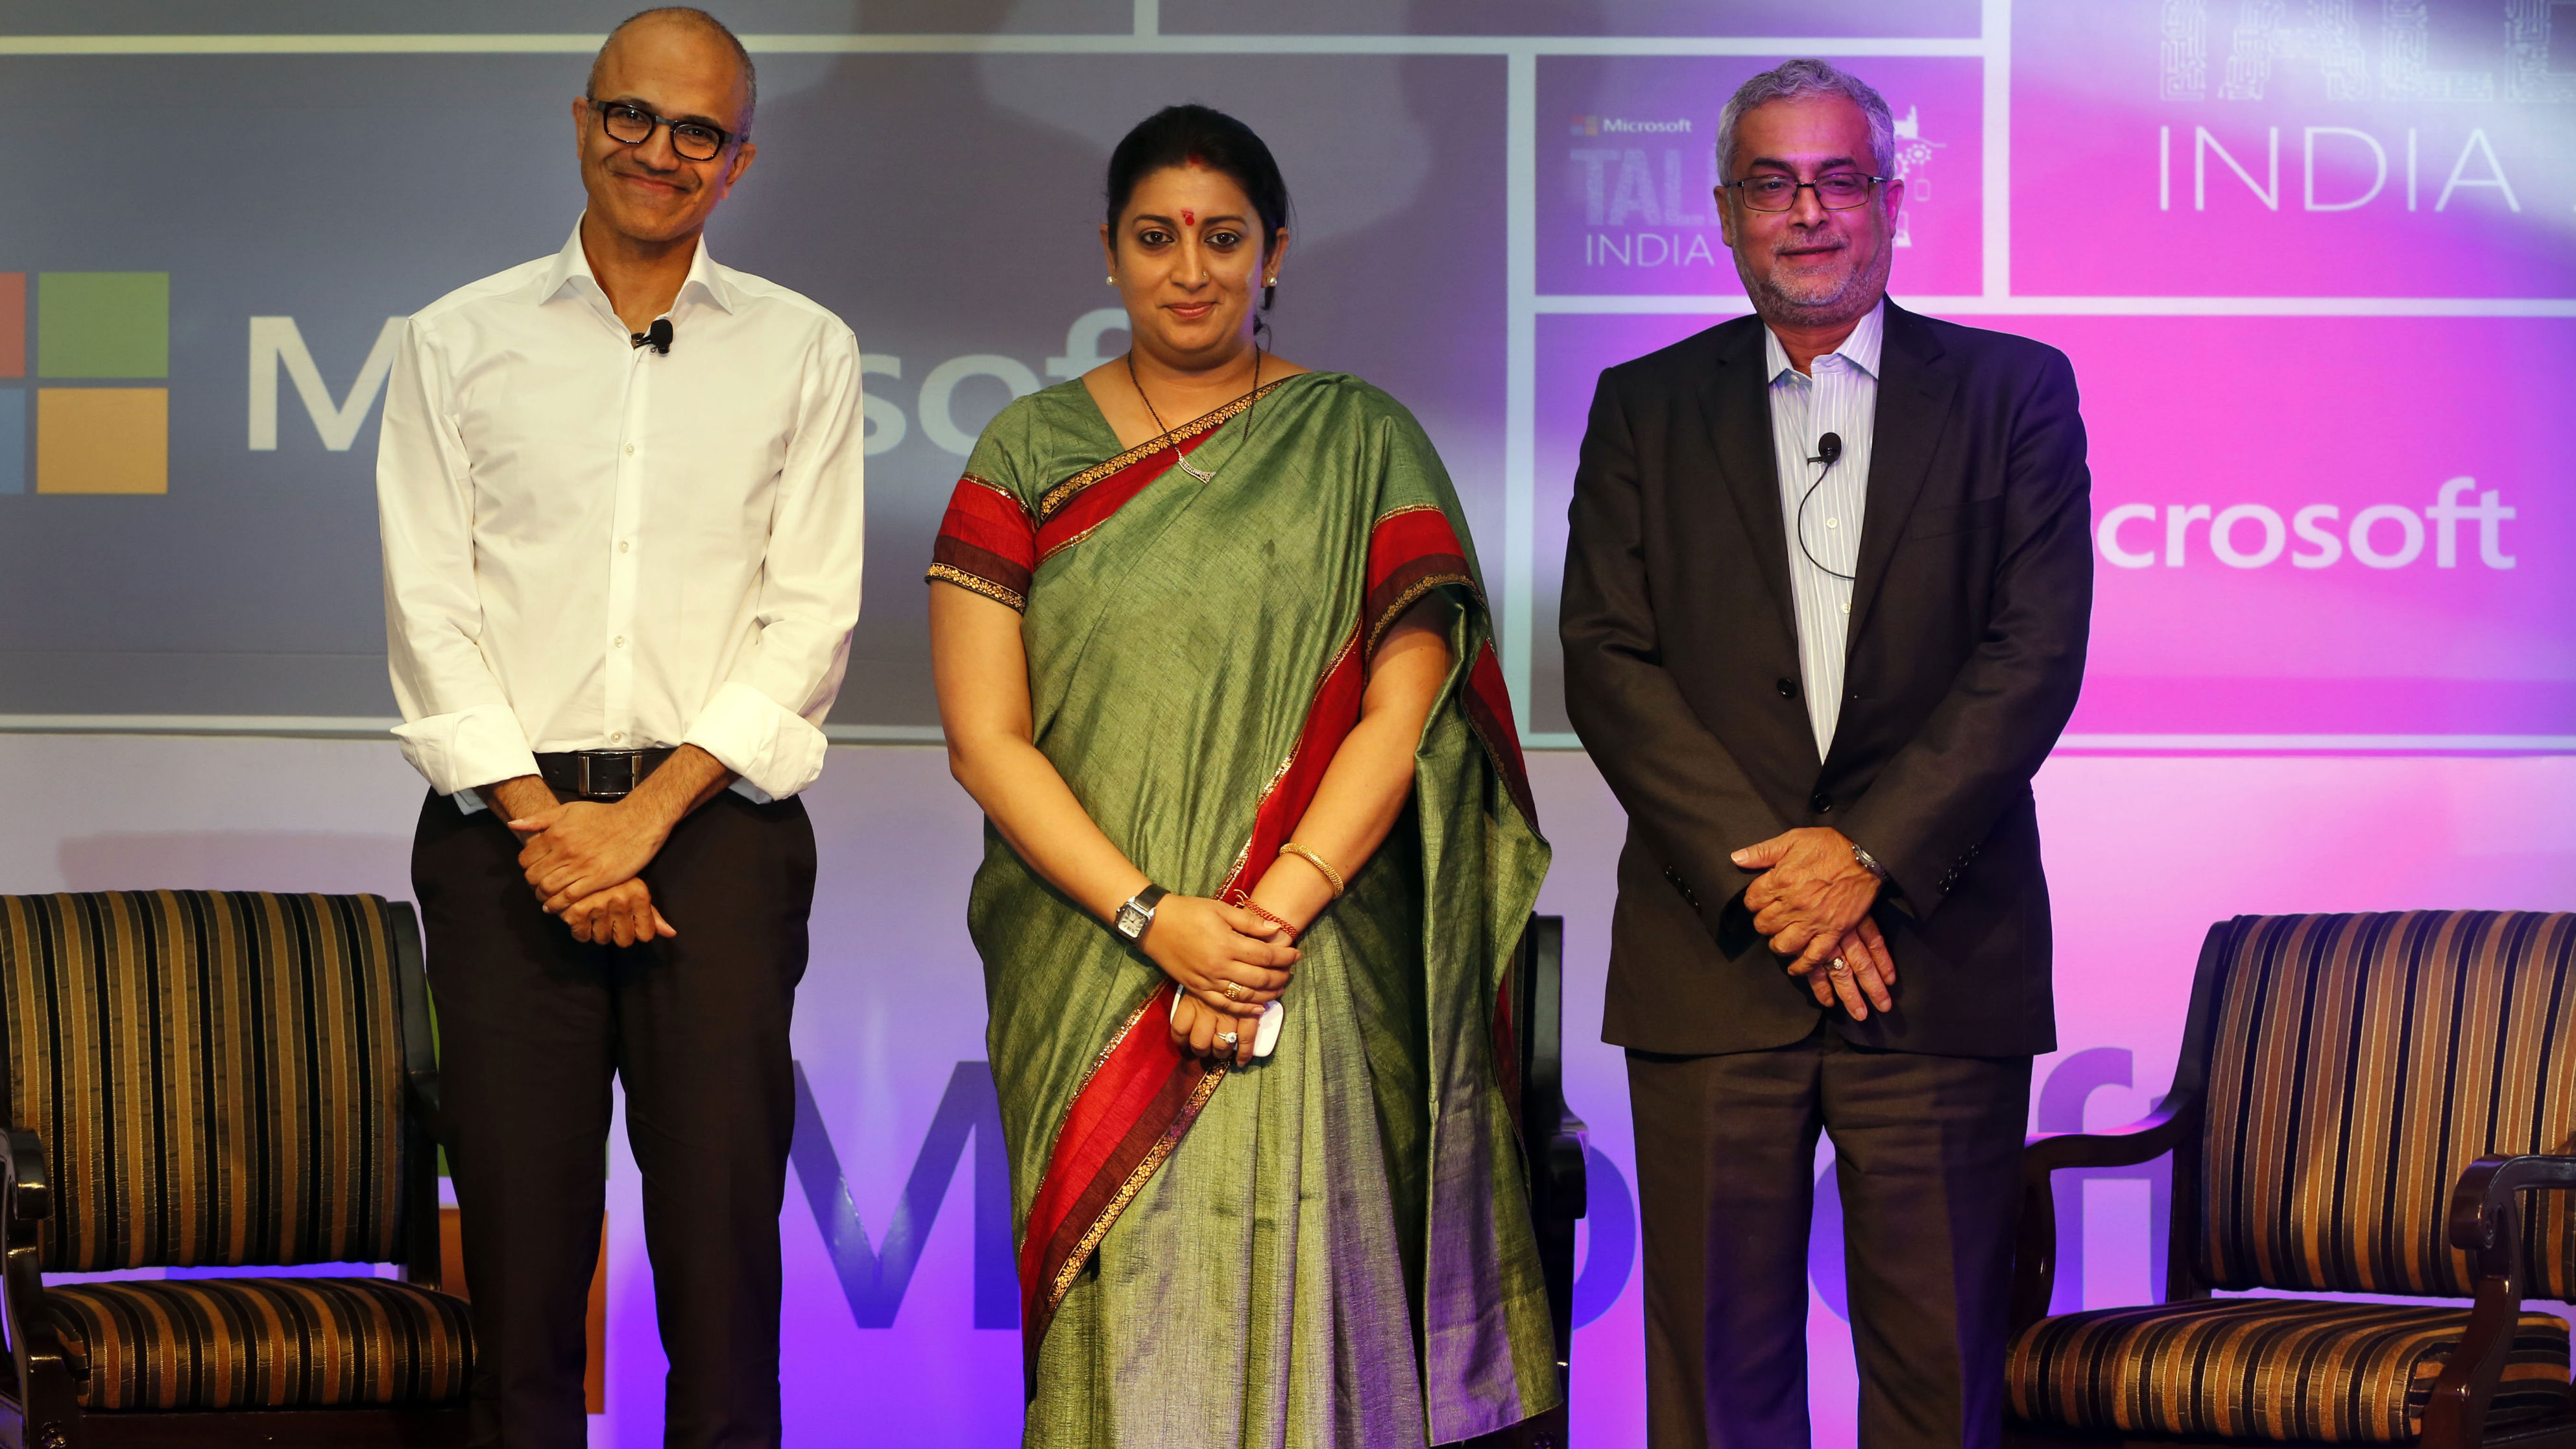 From left, Chief Executive Officer of Microsoft Satya Nadella, Indian minister for Human Resource Development Smriti Irani and Chairman of Microsoft India Bhaskar Pramanik, pose for the media at the Talent India 2014 program in New Delhi, India, Tuesday, Sept. 30, 2014. (AP Photo/Manish Swarup)